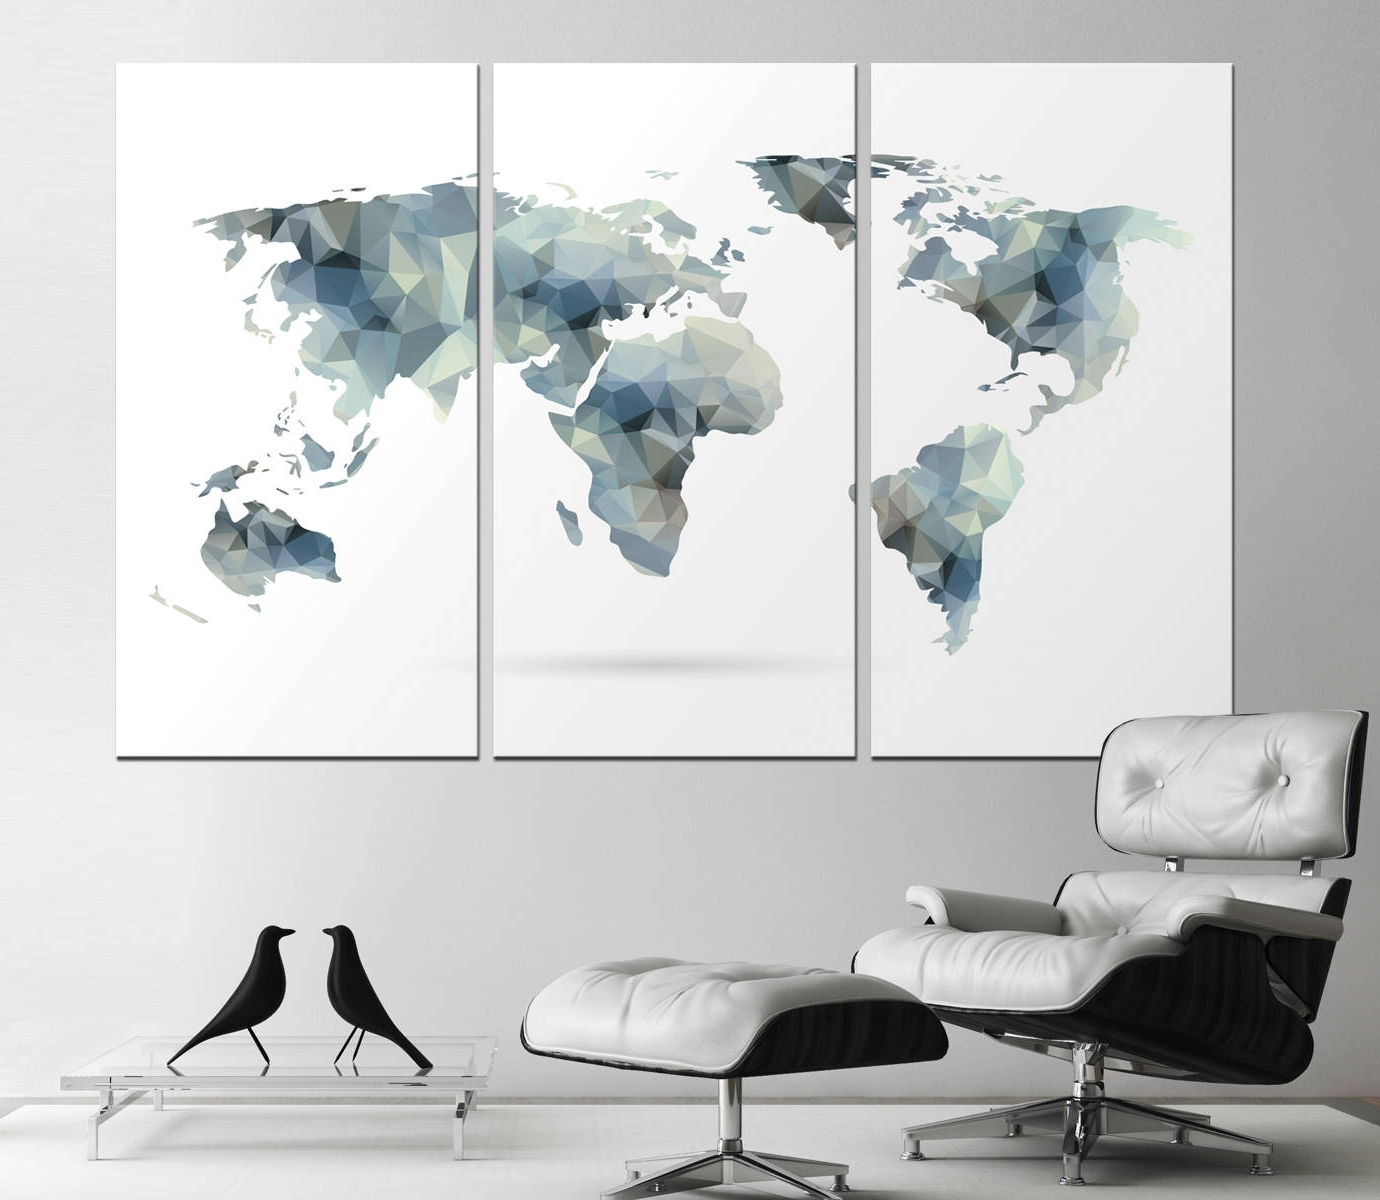 Large Geometric World Map Print, Abstract World Map Canvas Panels Pertaining To Famous Abstract World Map Wall Art (View 5 of 15)